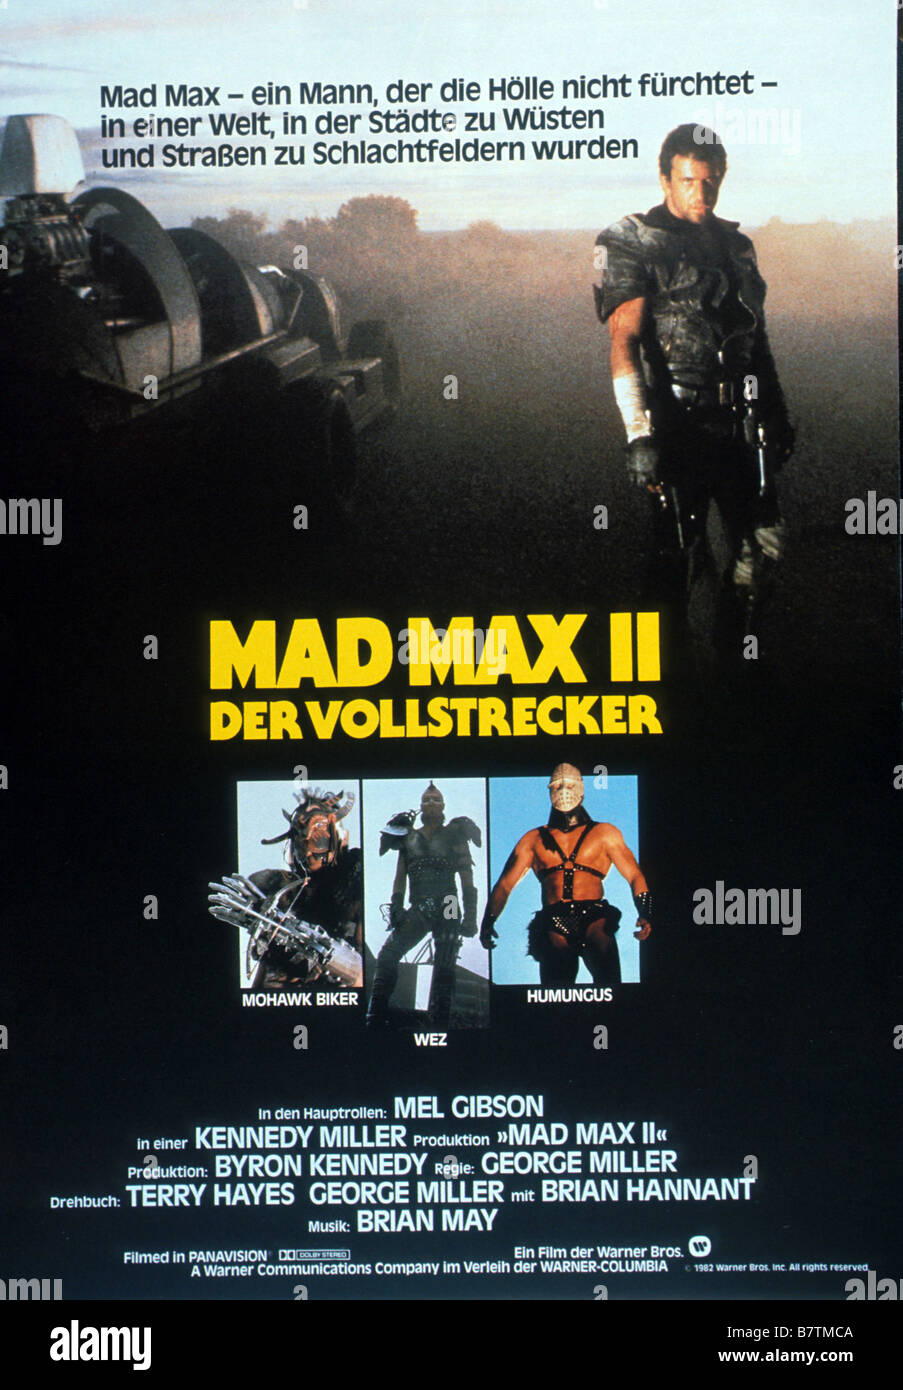 Mad Max 2: The Road Warrior  Year: 1981 - Australia Director: Mel Gibson George Miller Movie poster (Ger) Stock Photo